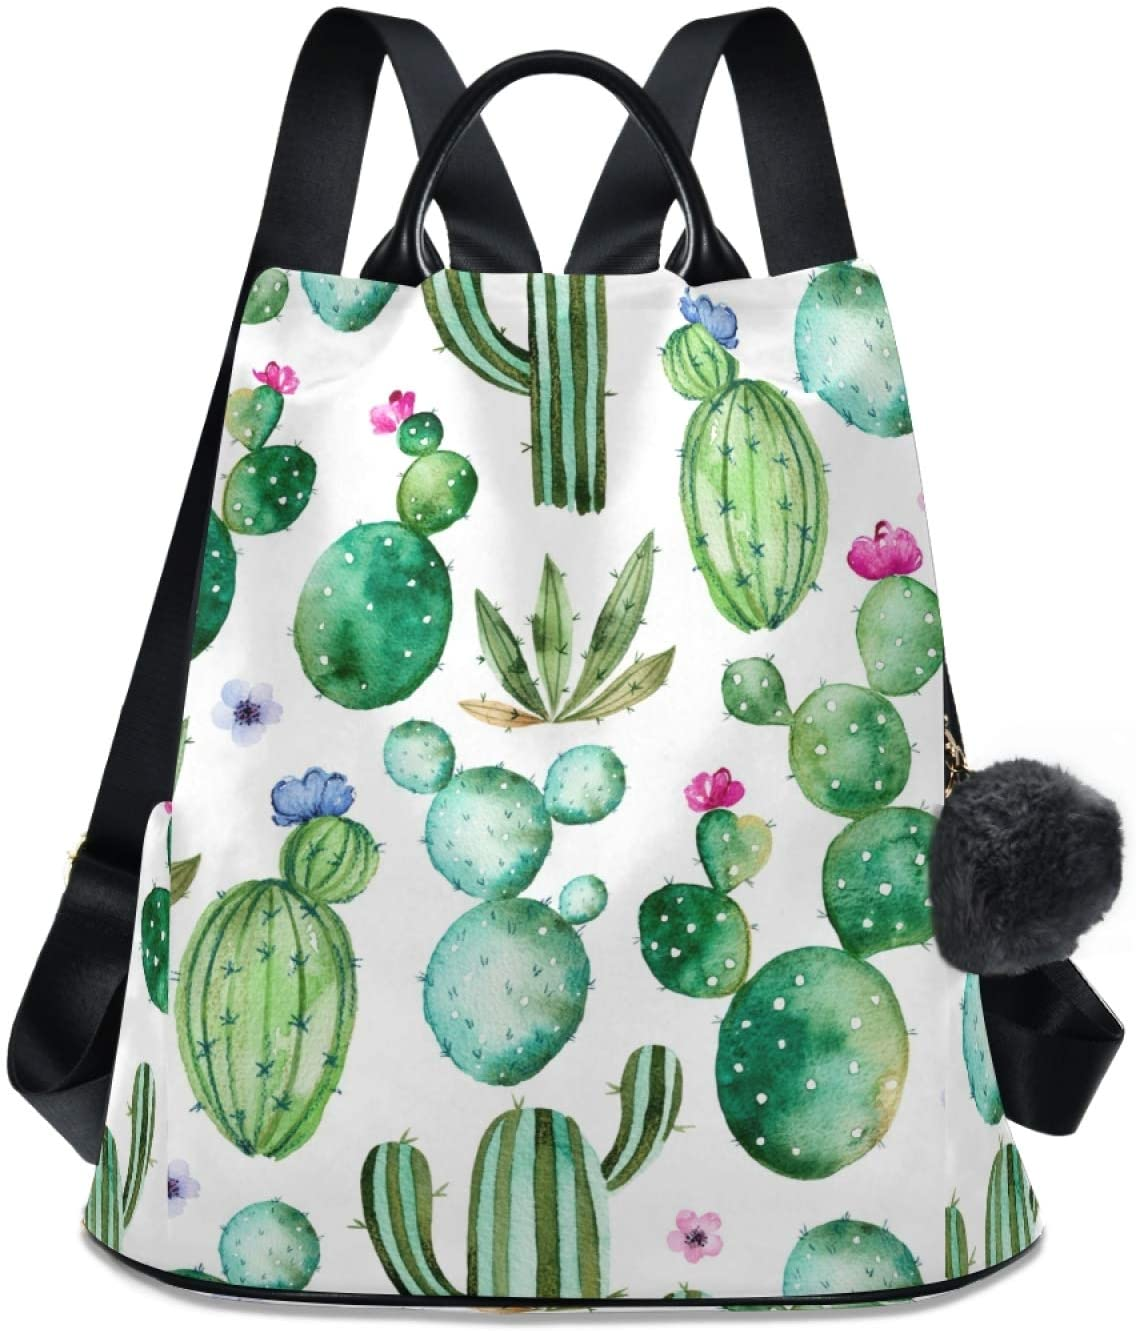 ALAZA Cactus Cacti with Flowers White Backpack Purse for Women Anti Theft Fashion Back Pack Shoulder Bag